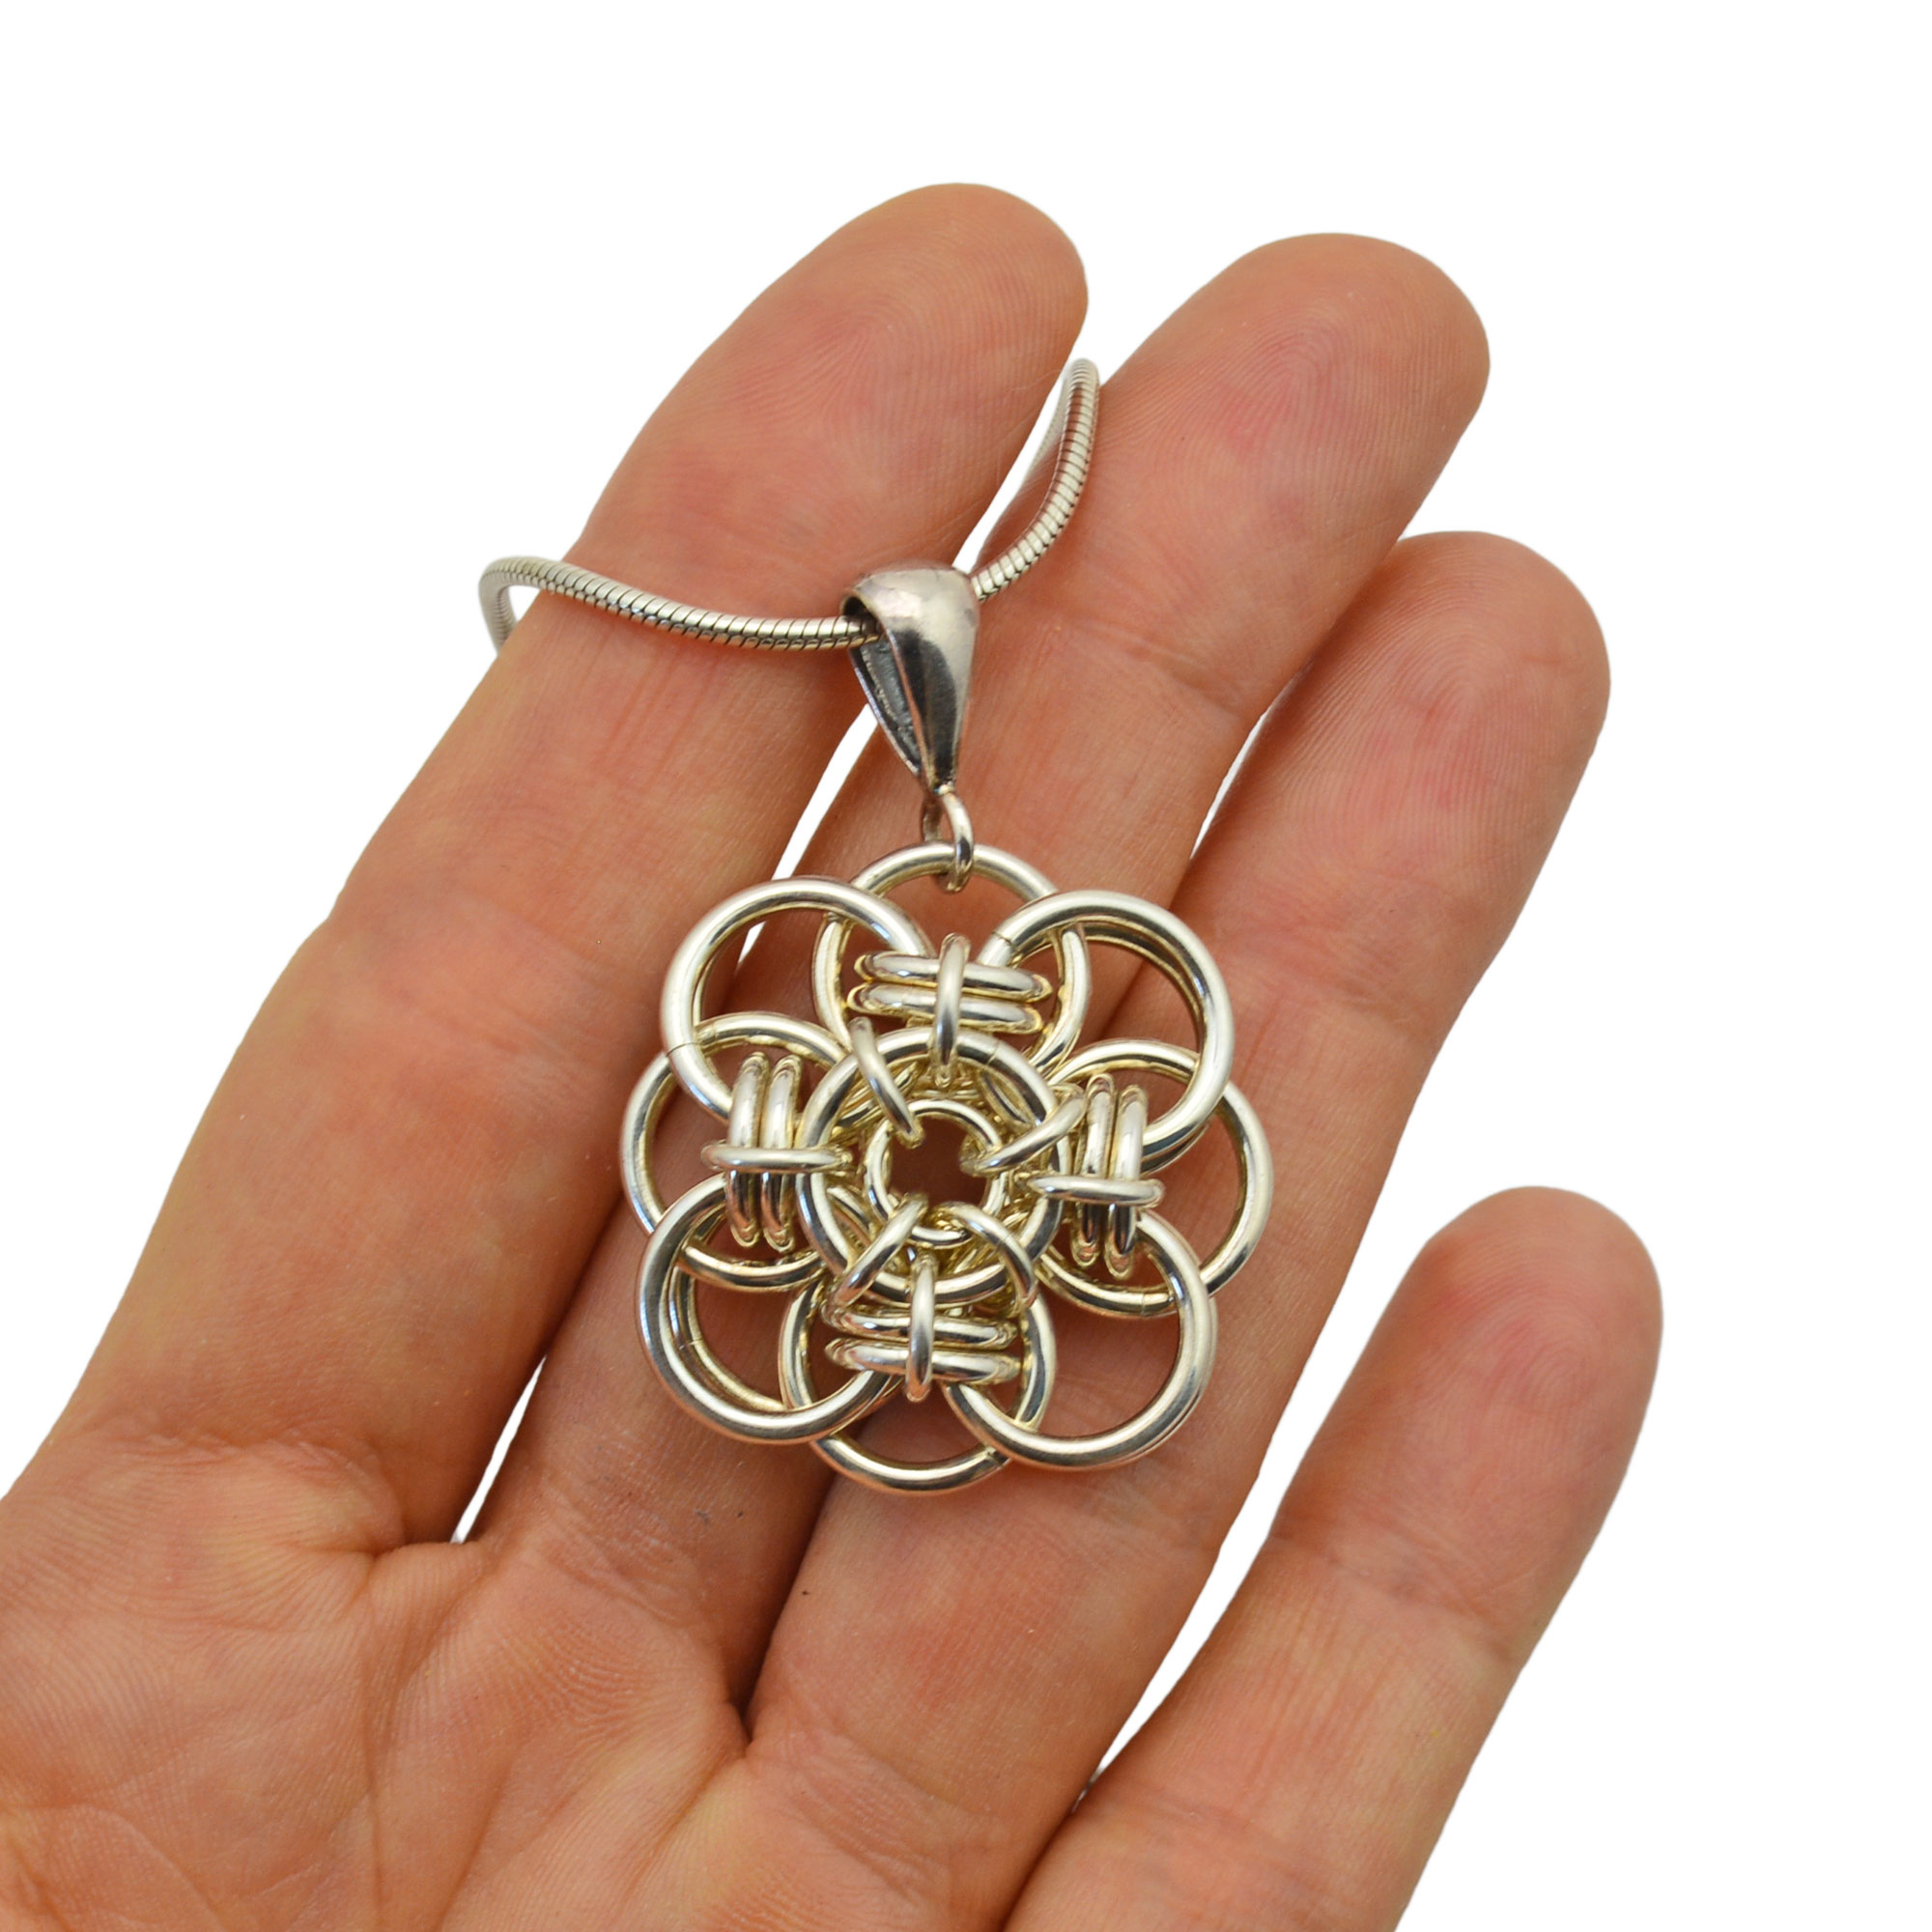 quantum rose sterling silver pendant in palm